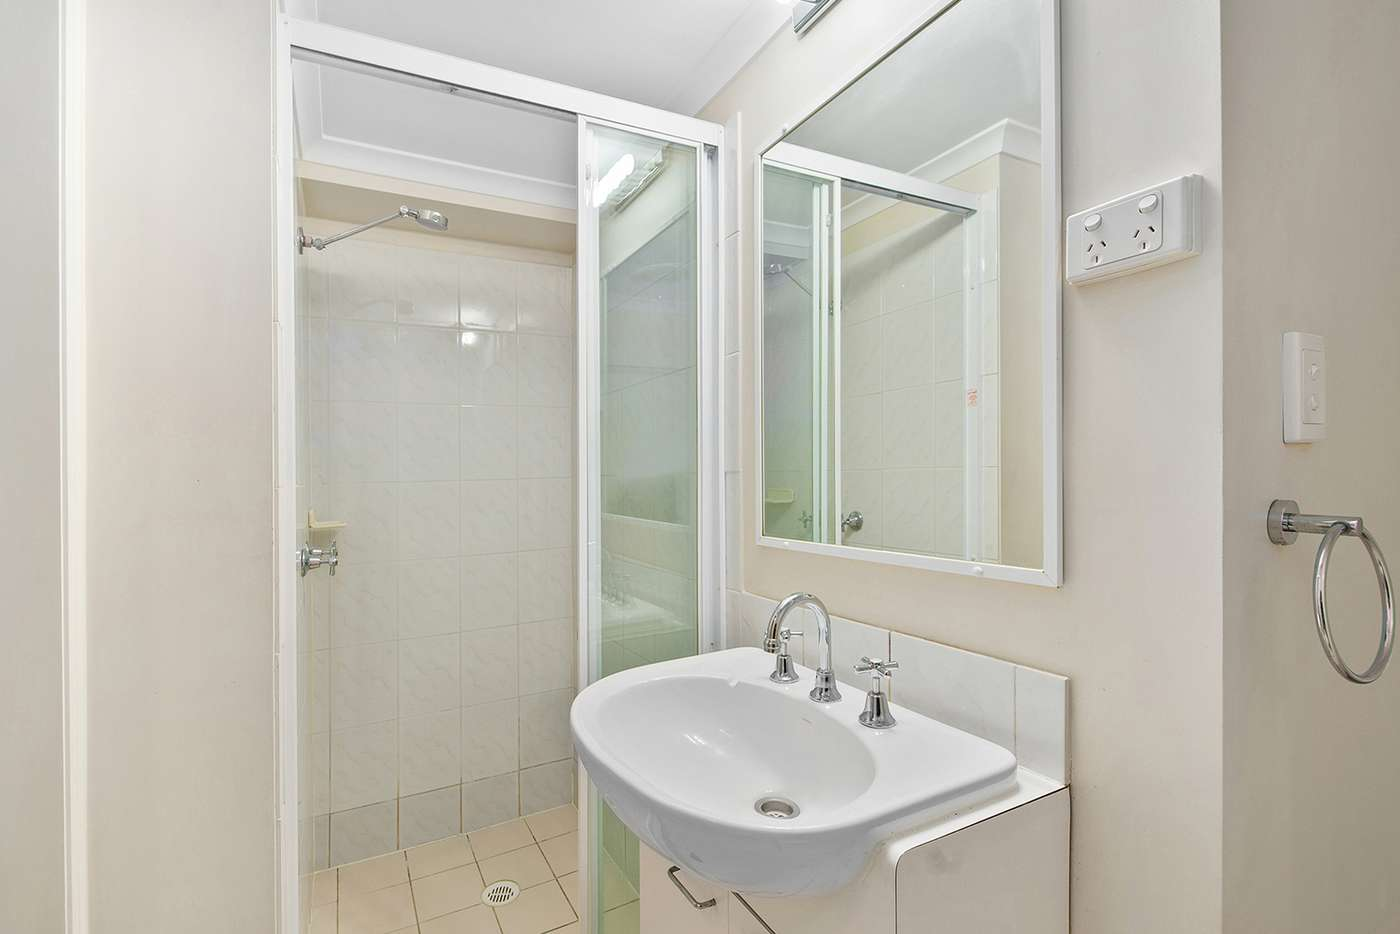 Sixth view of Homely apartment listing, 2/12 Mcgregor Avenue, Lutwyche QLD 4030